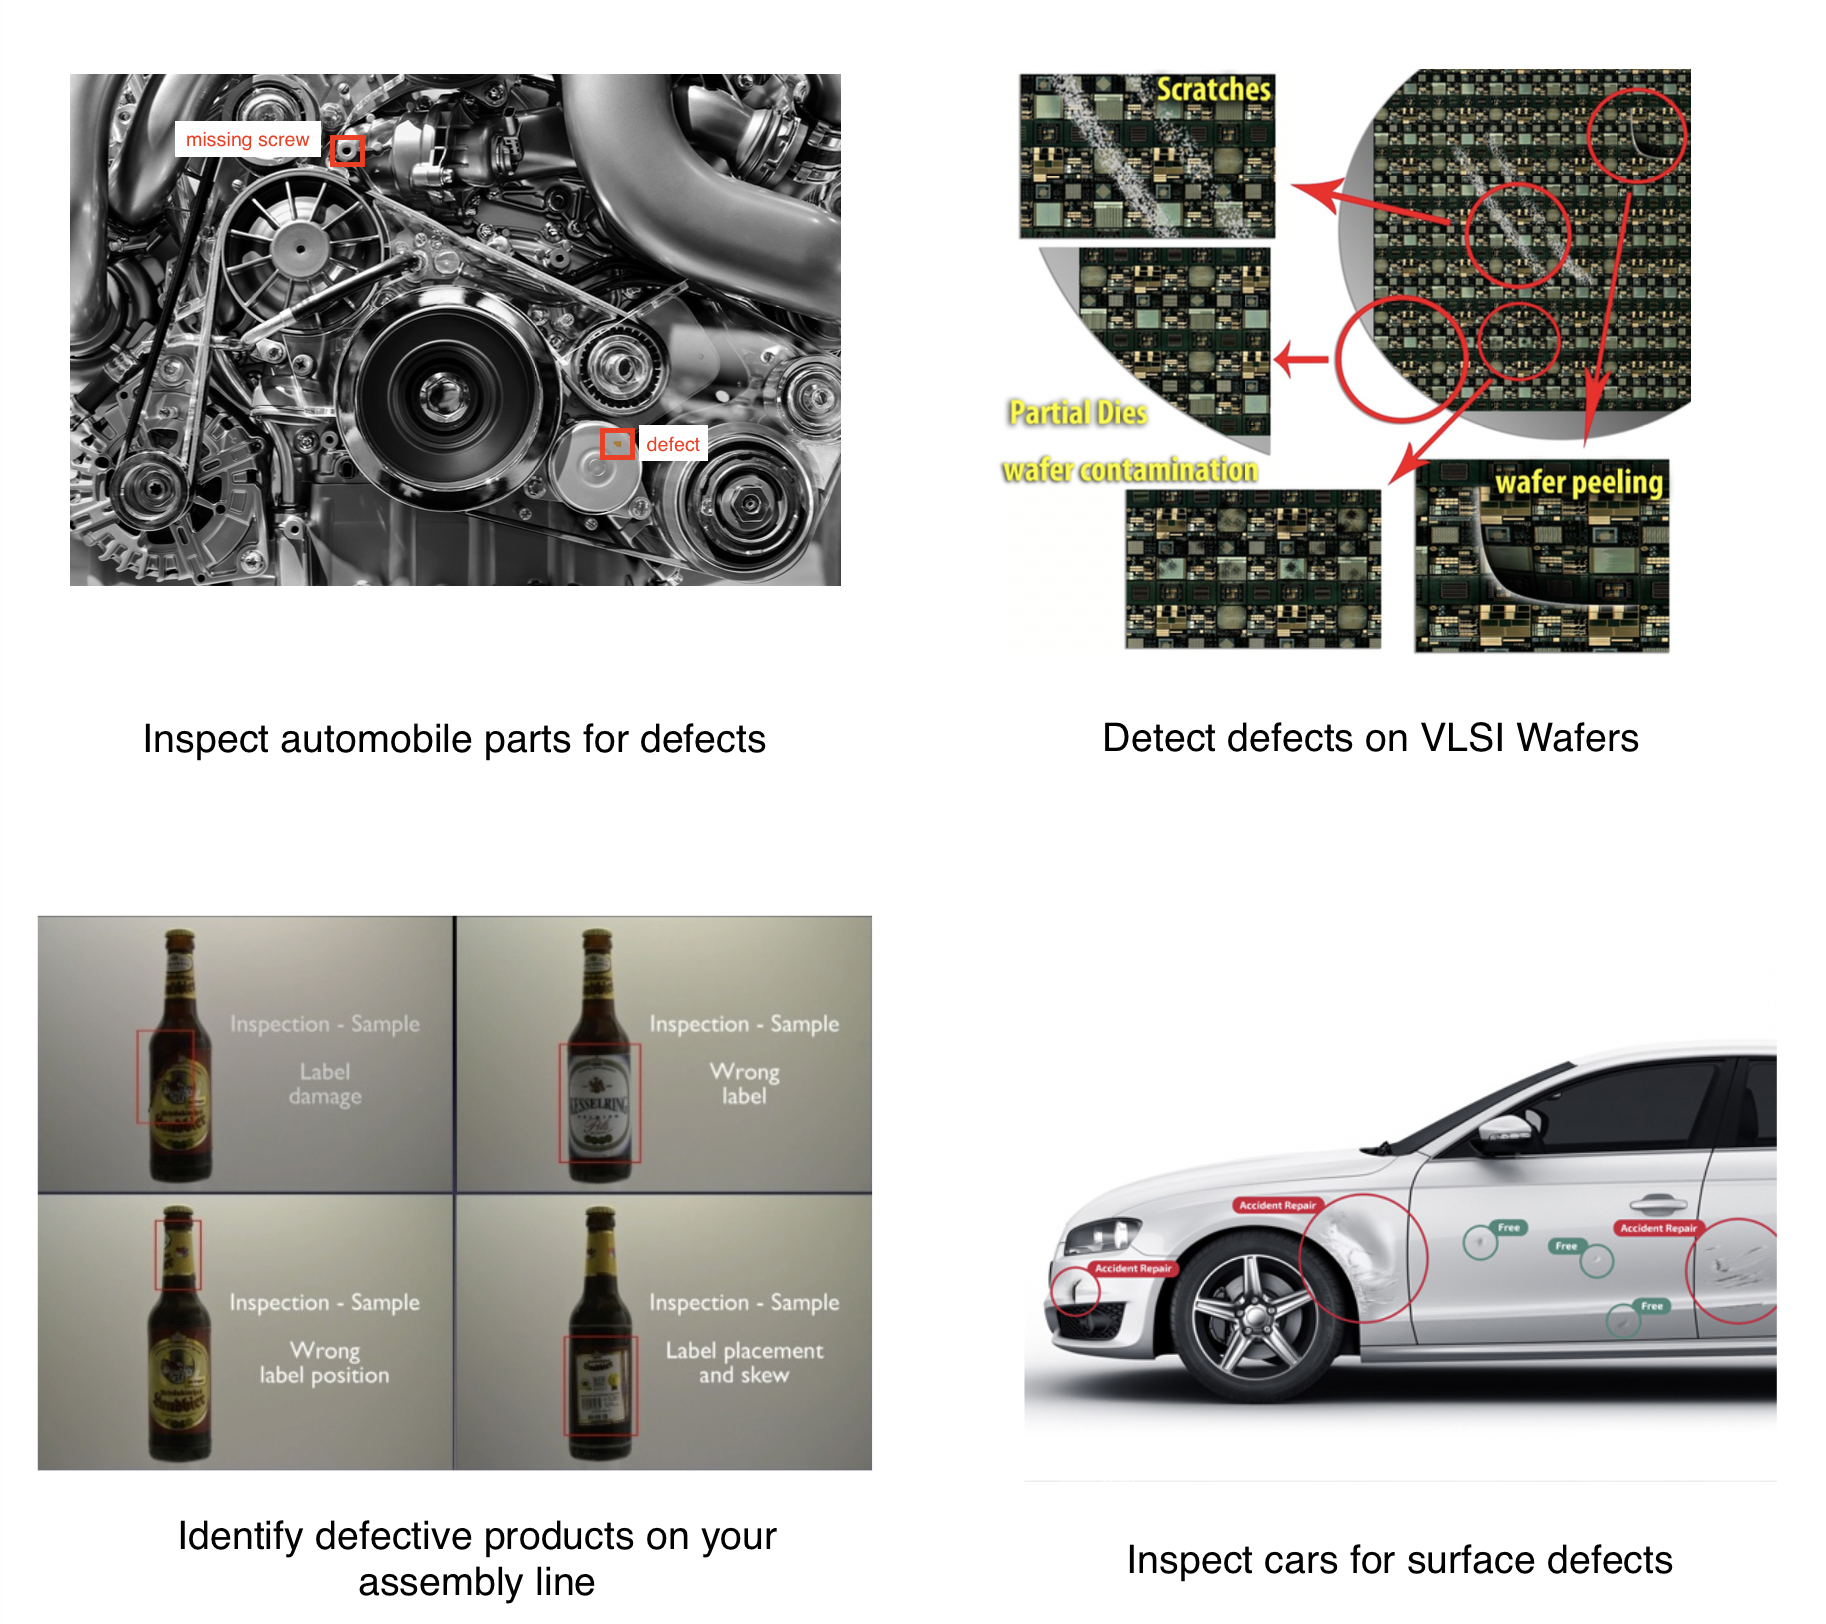 Automated Visual Inspection in automobiles , VLSI defect, assembly line, car surface defect